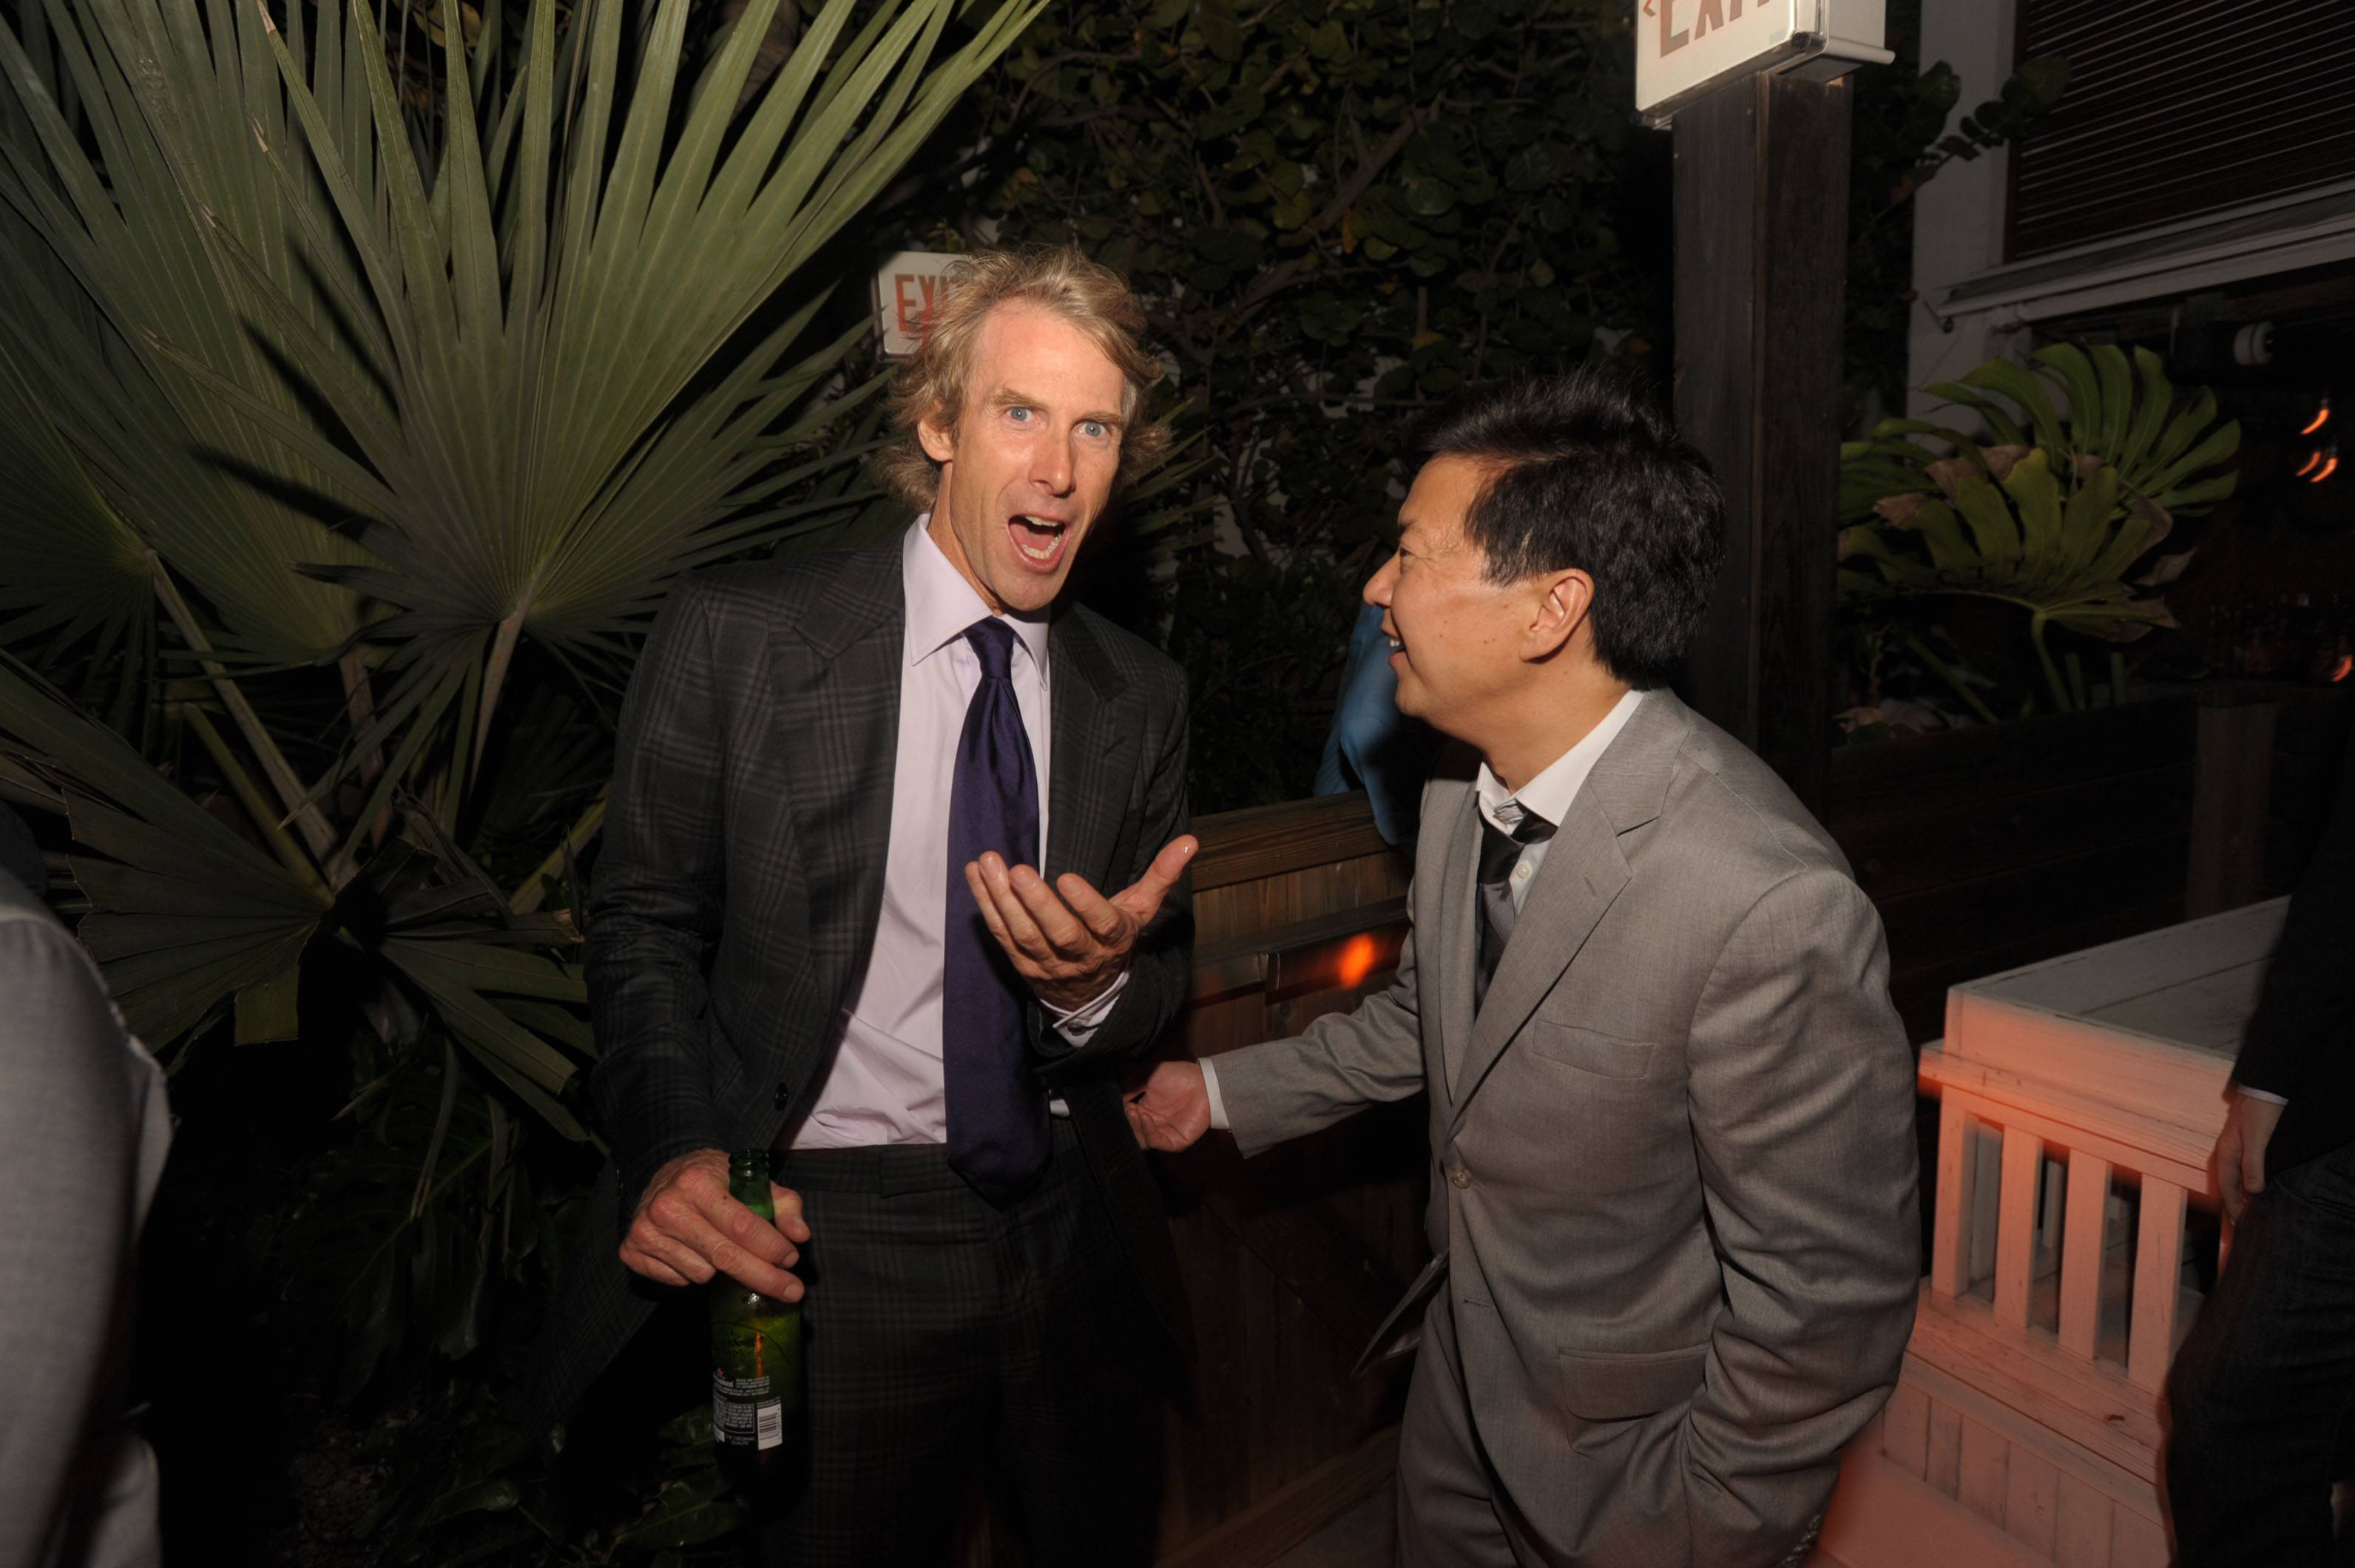 Michael Bay and Ken Jeong